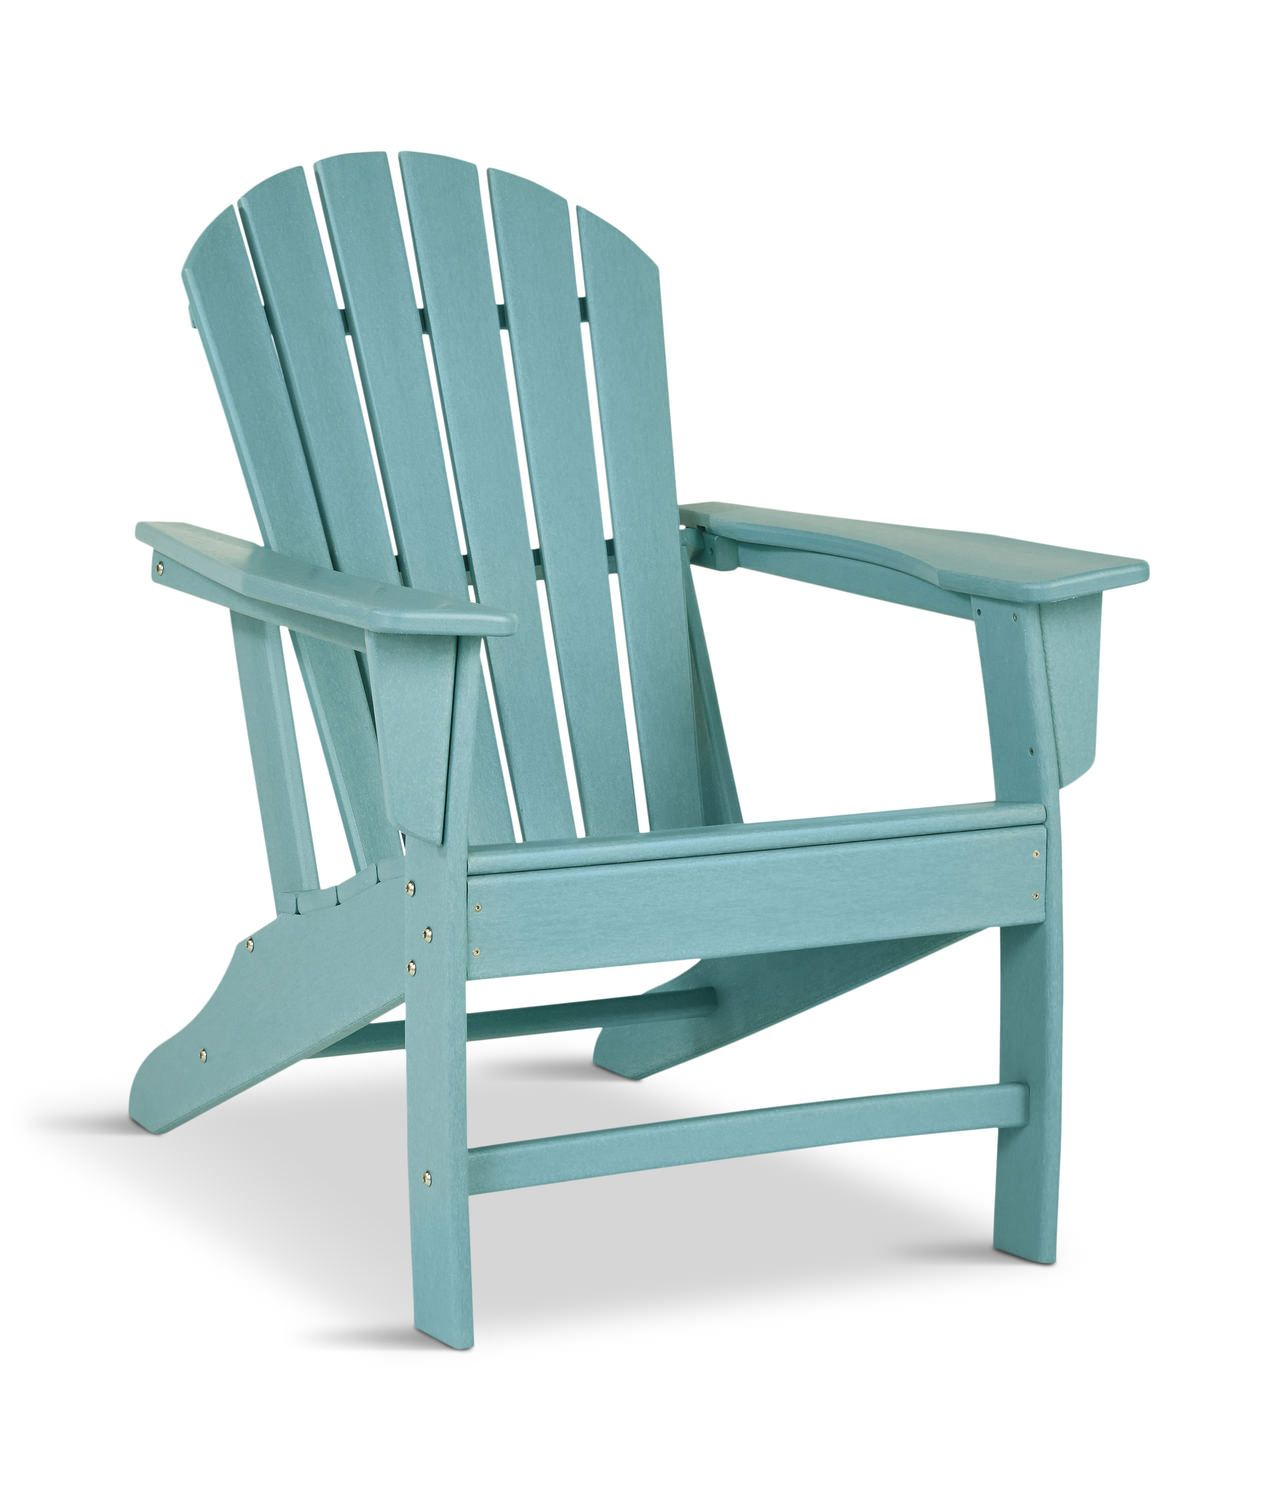 Sunset Adirondack Chair Adirondack Chair Adirondack Chairs